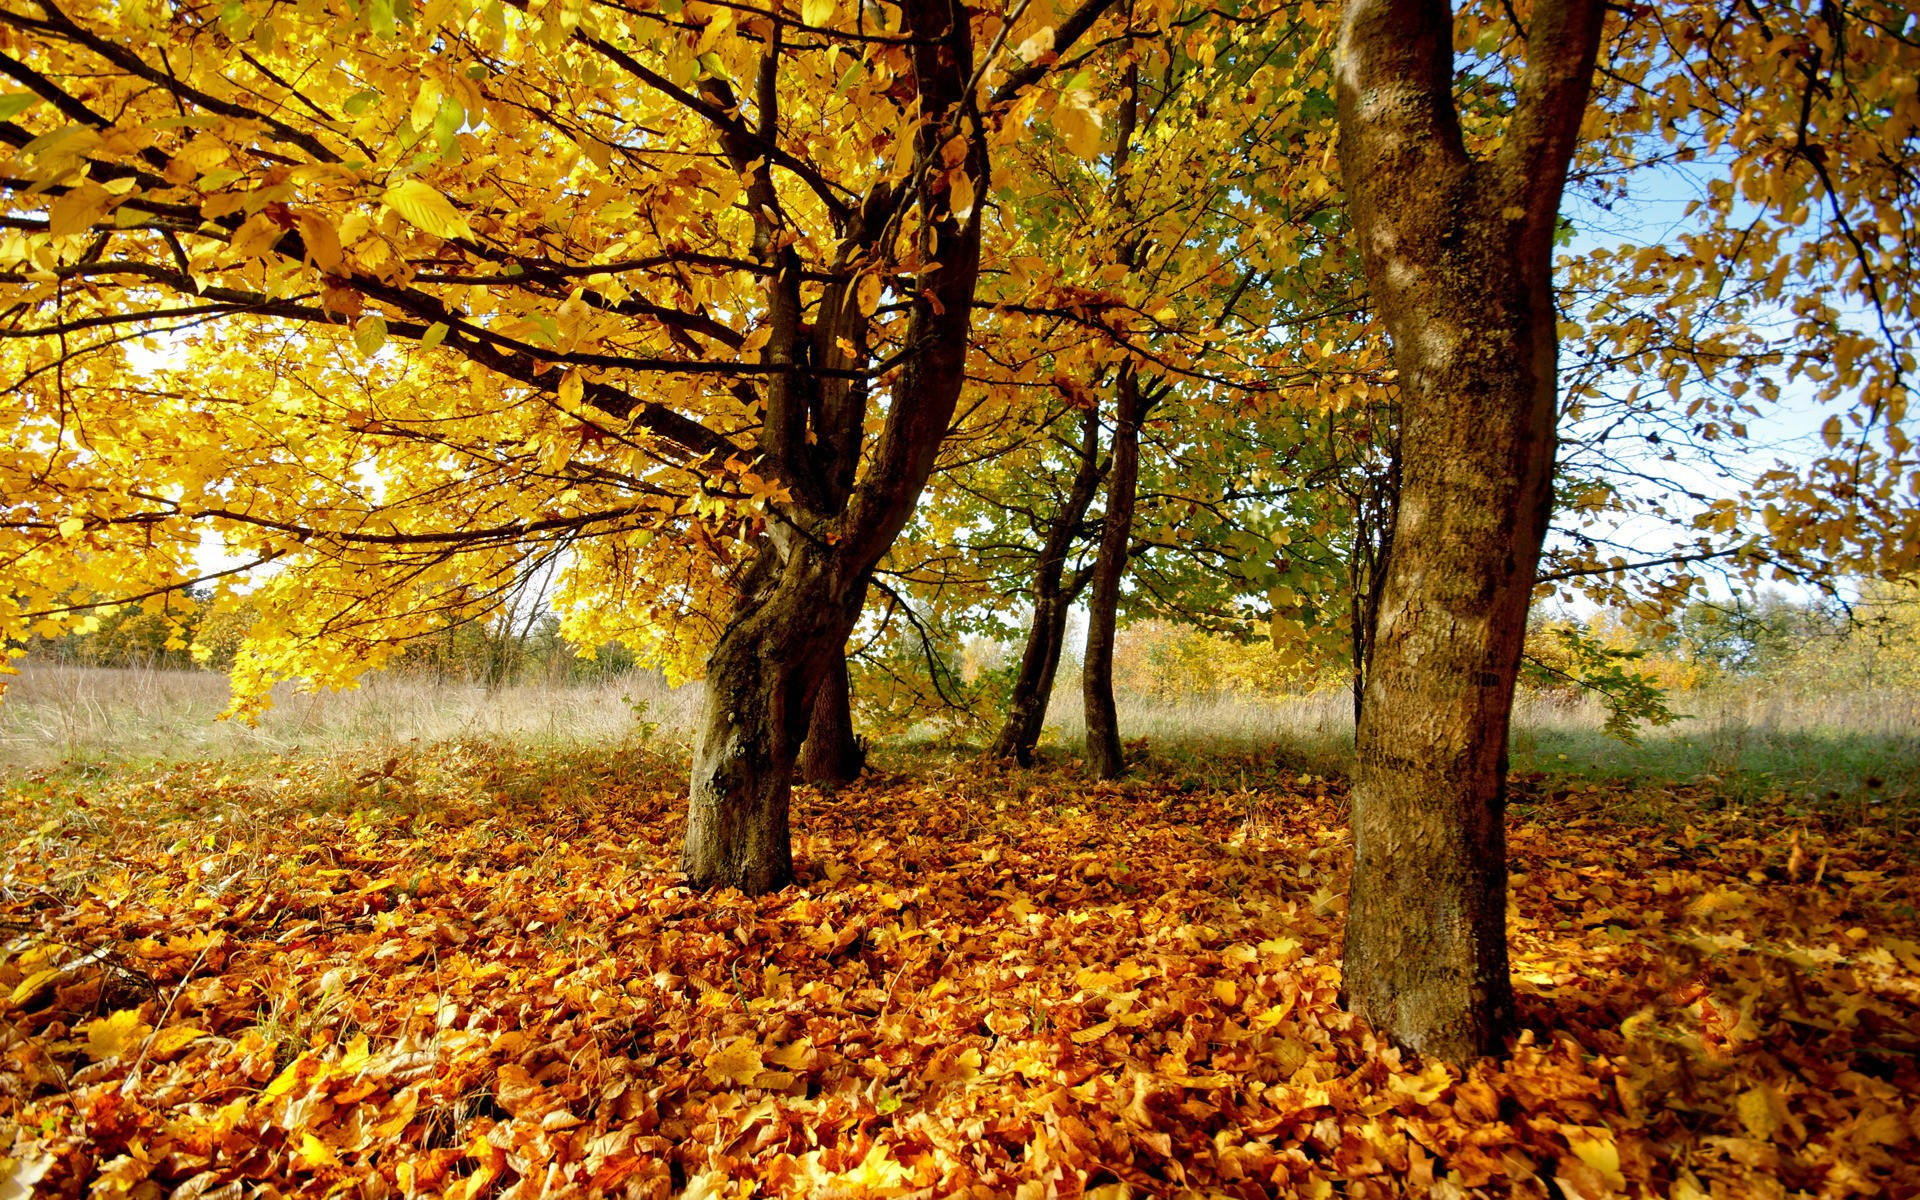 Fantasy Forest 3d Desktop Wallpaper Autumn Yellow Listopad Wallpapers And Images Wallpapers